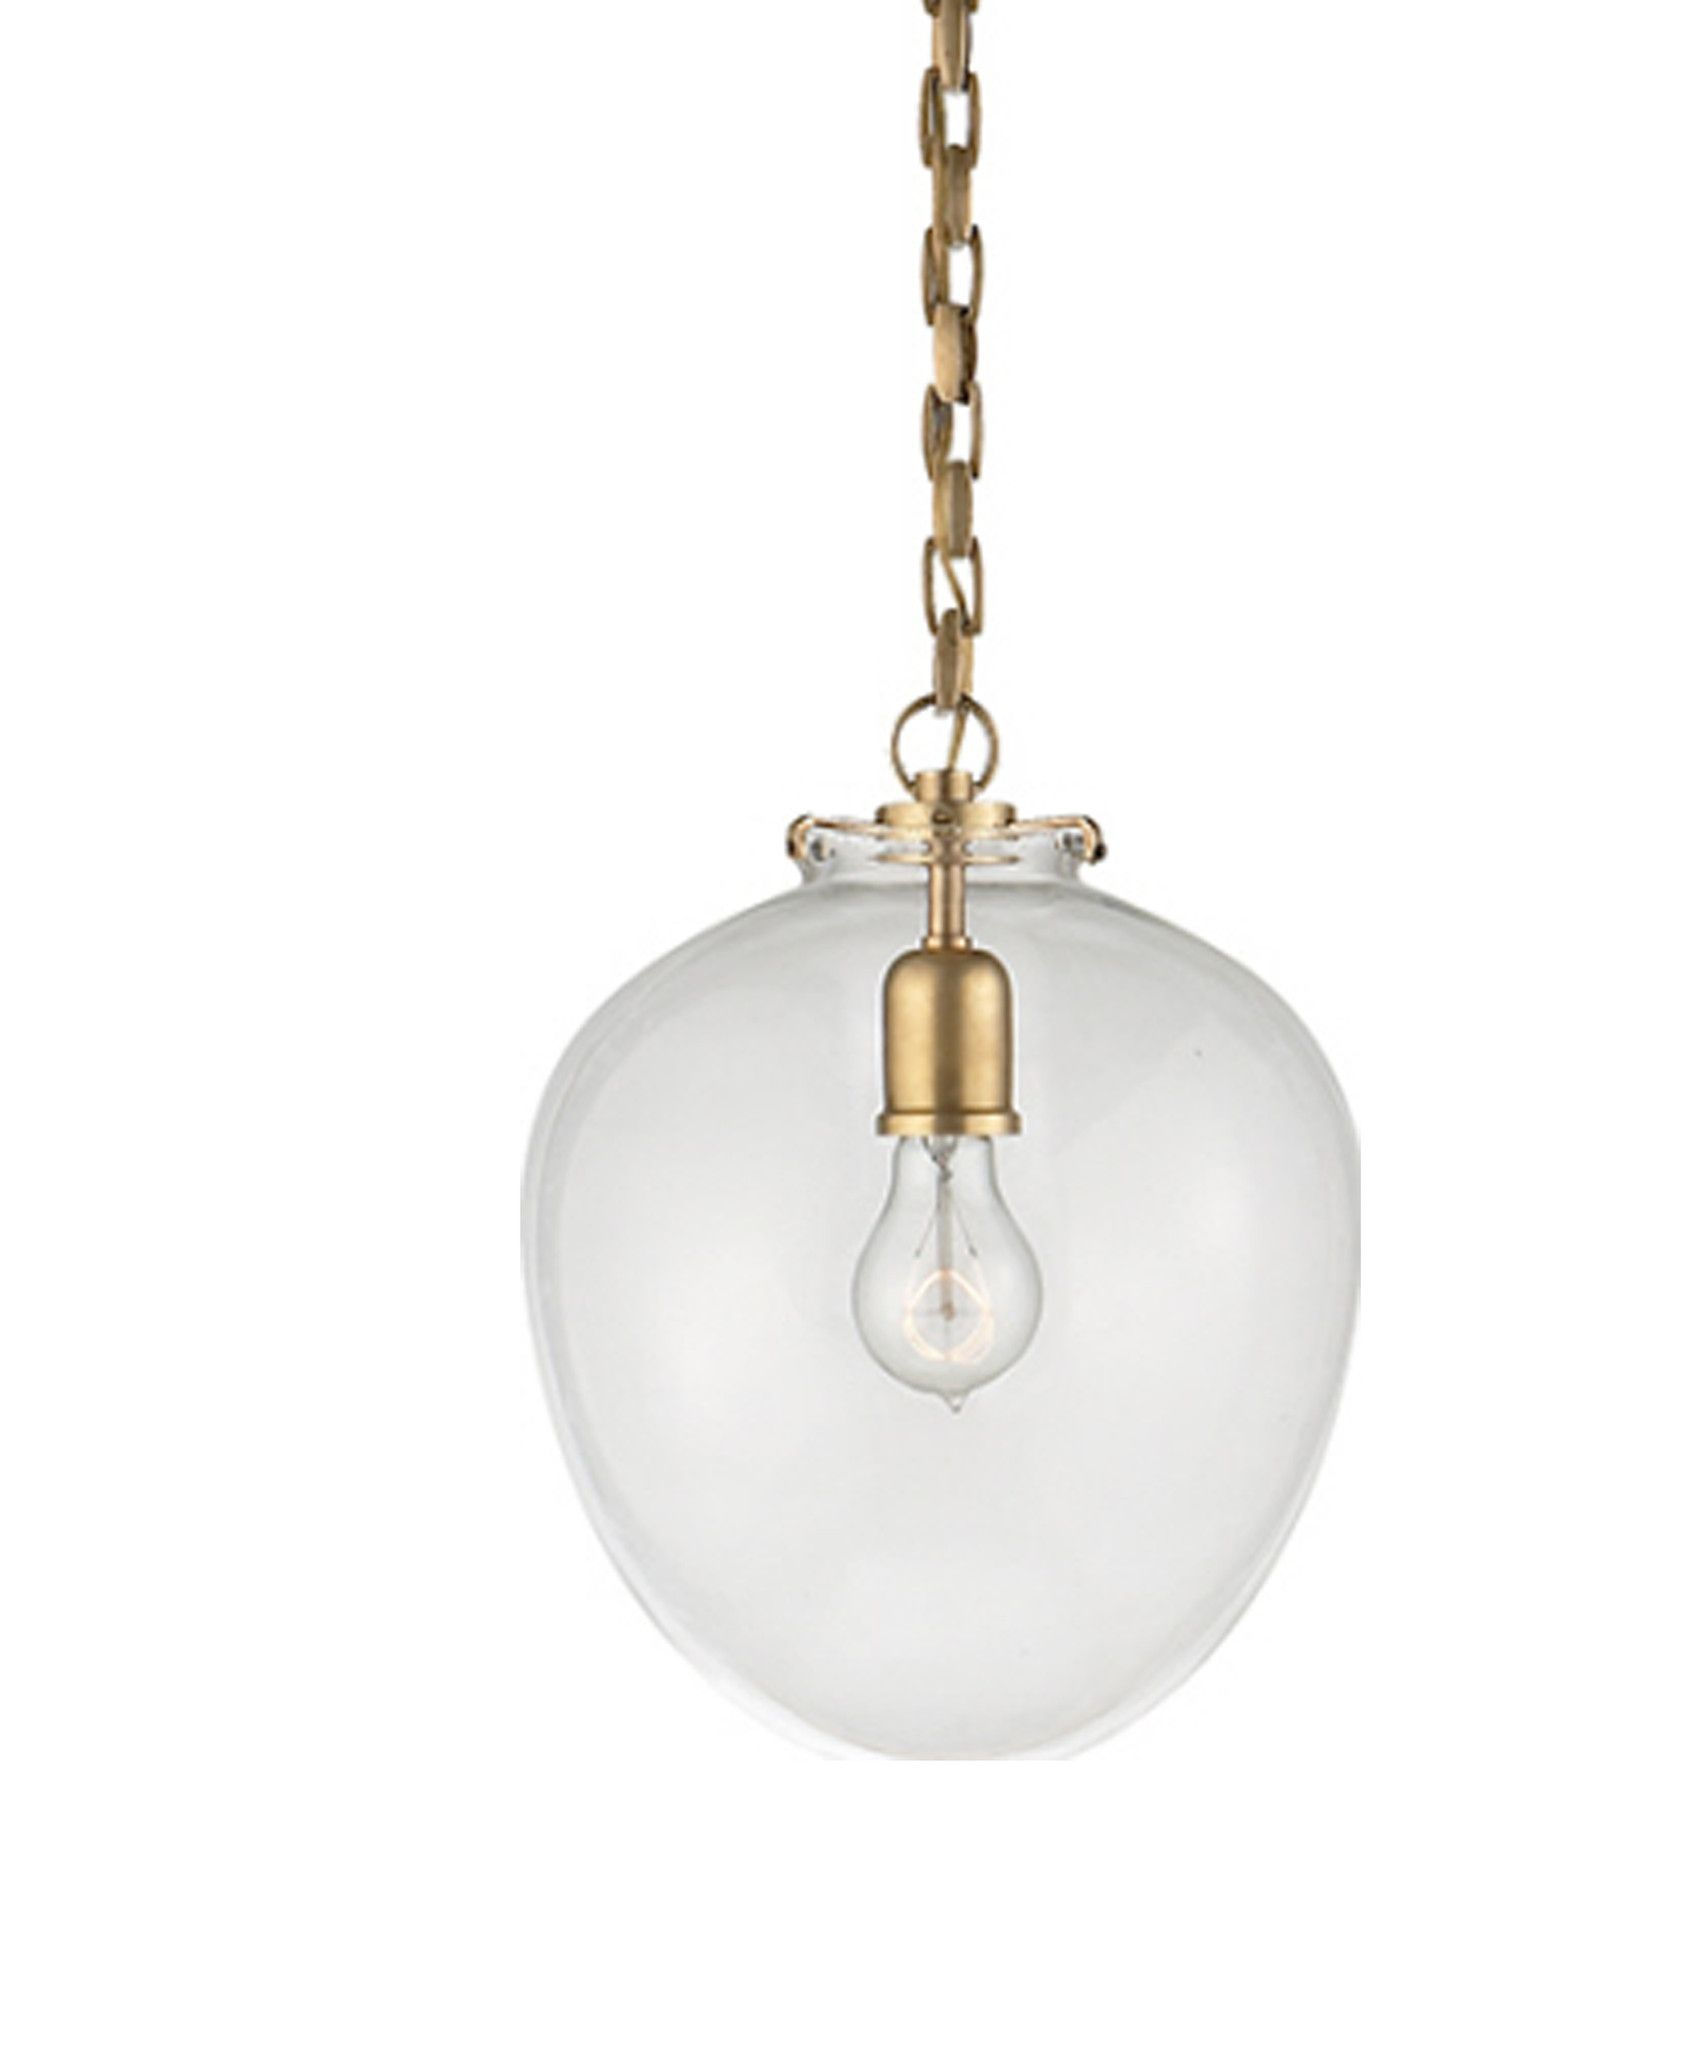 Large Katie Acorn Pendant, Clear Glass with Antique Brass